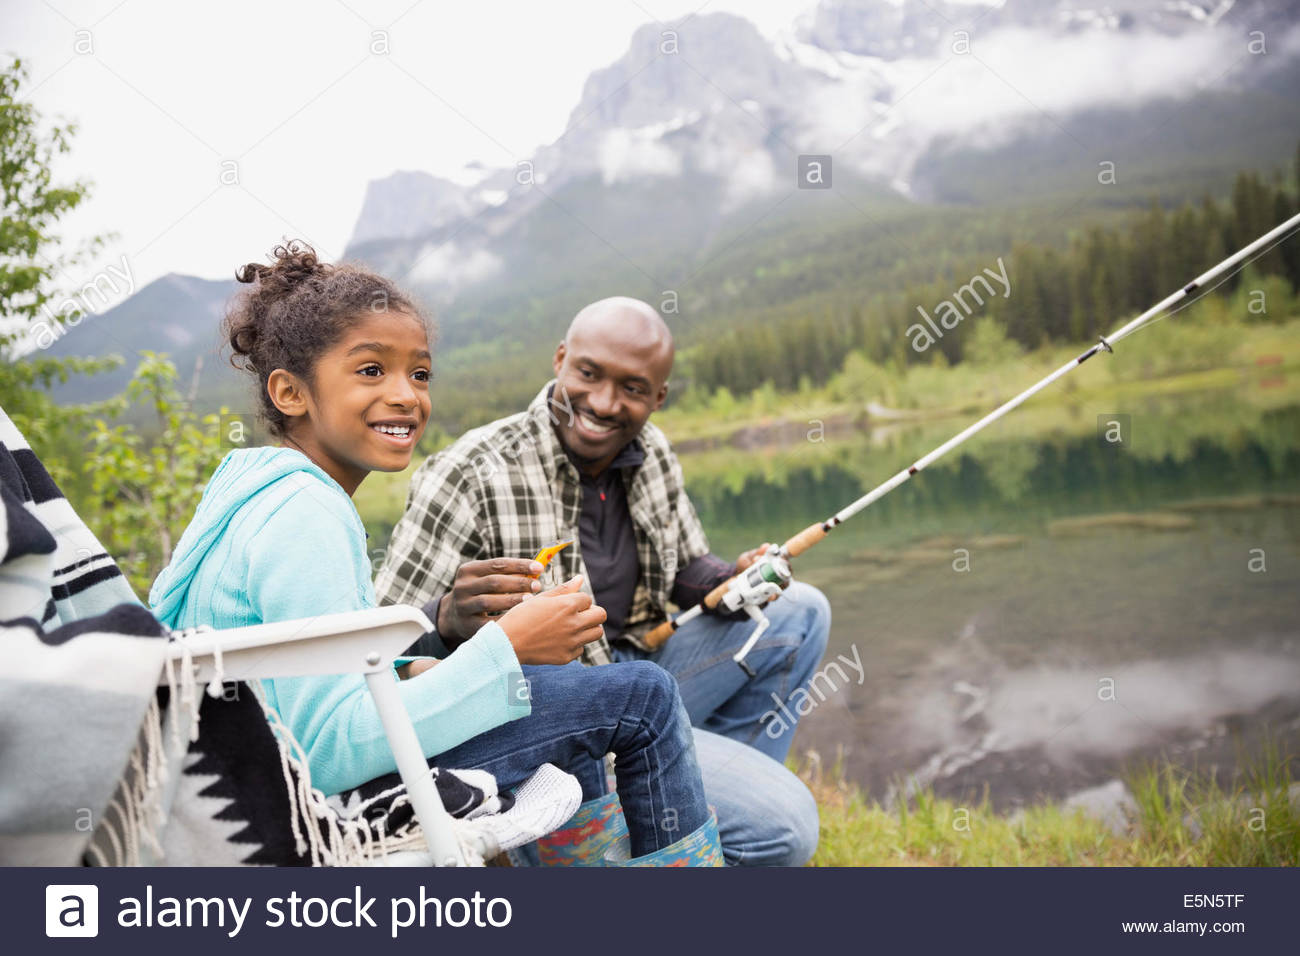 Father teaching daughter to fish at lakeside - Stock Image